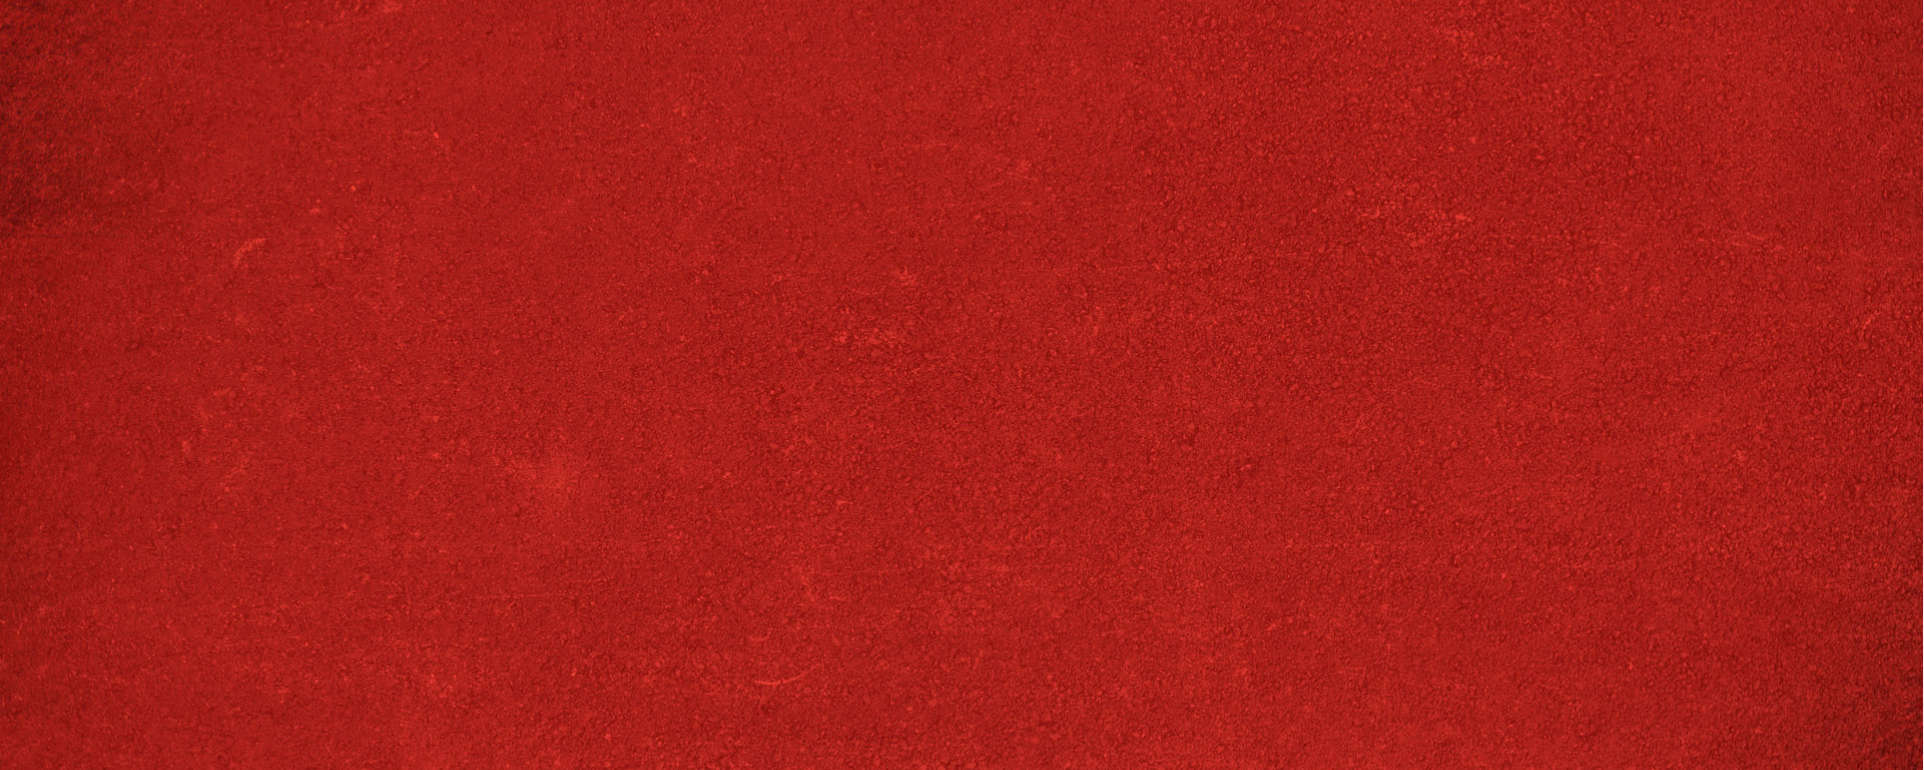 Red Texture Agape